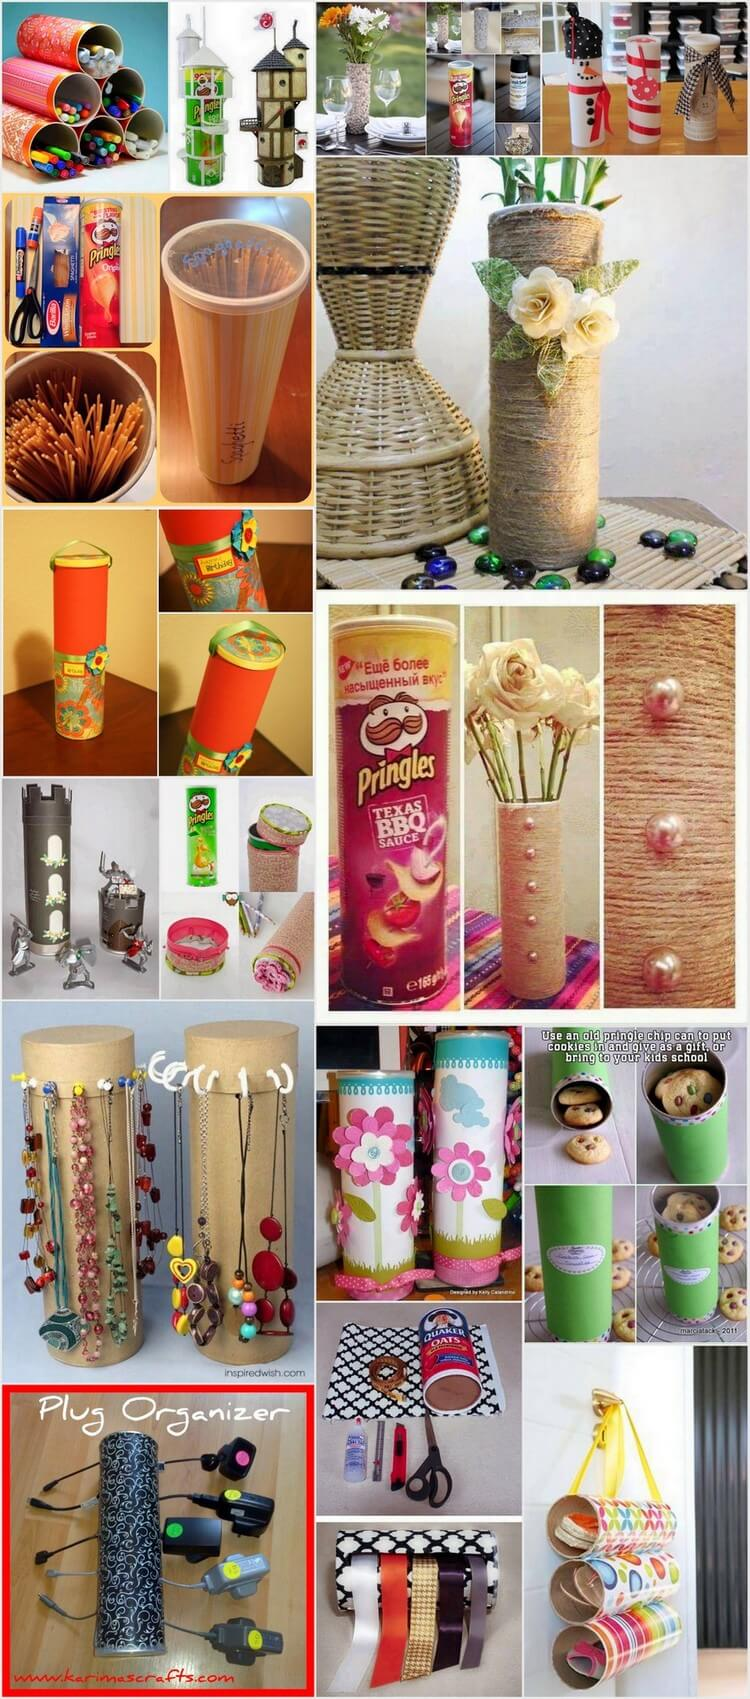 EXCITING WAYS TO UPCYCLE PRINGLE TUBES